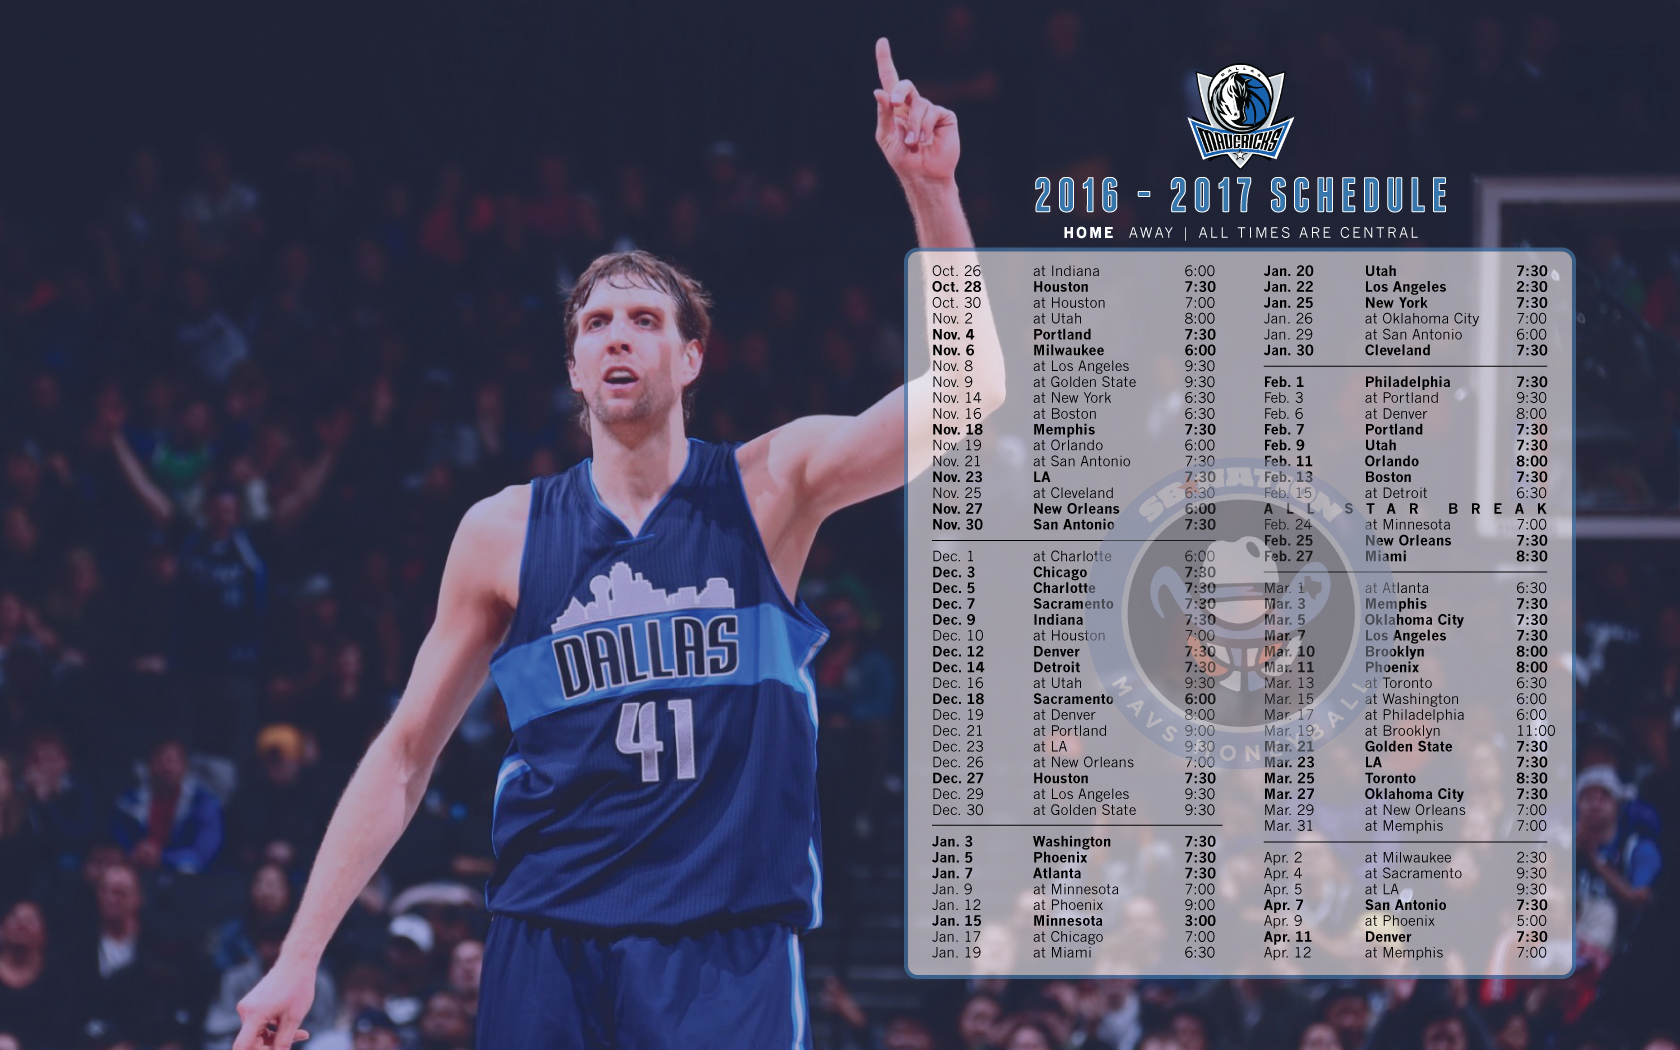 Wallpaper Schedule Click For Full Sized Image